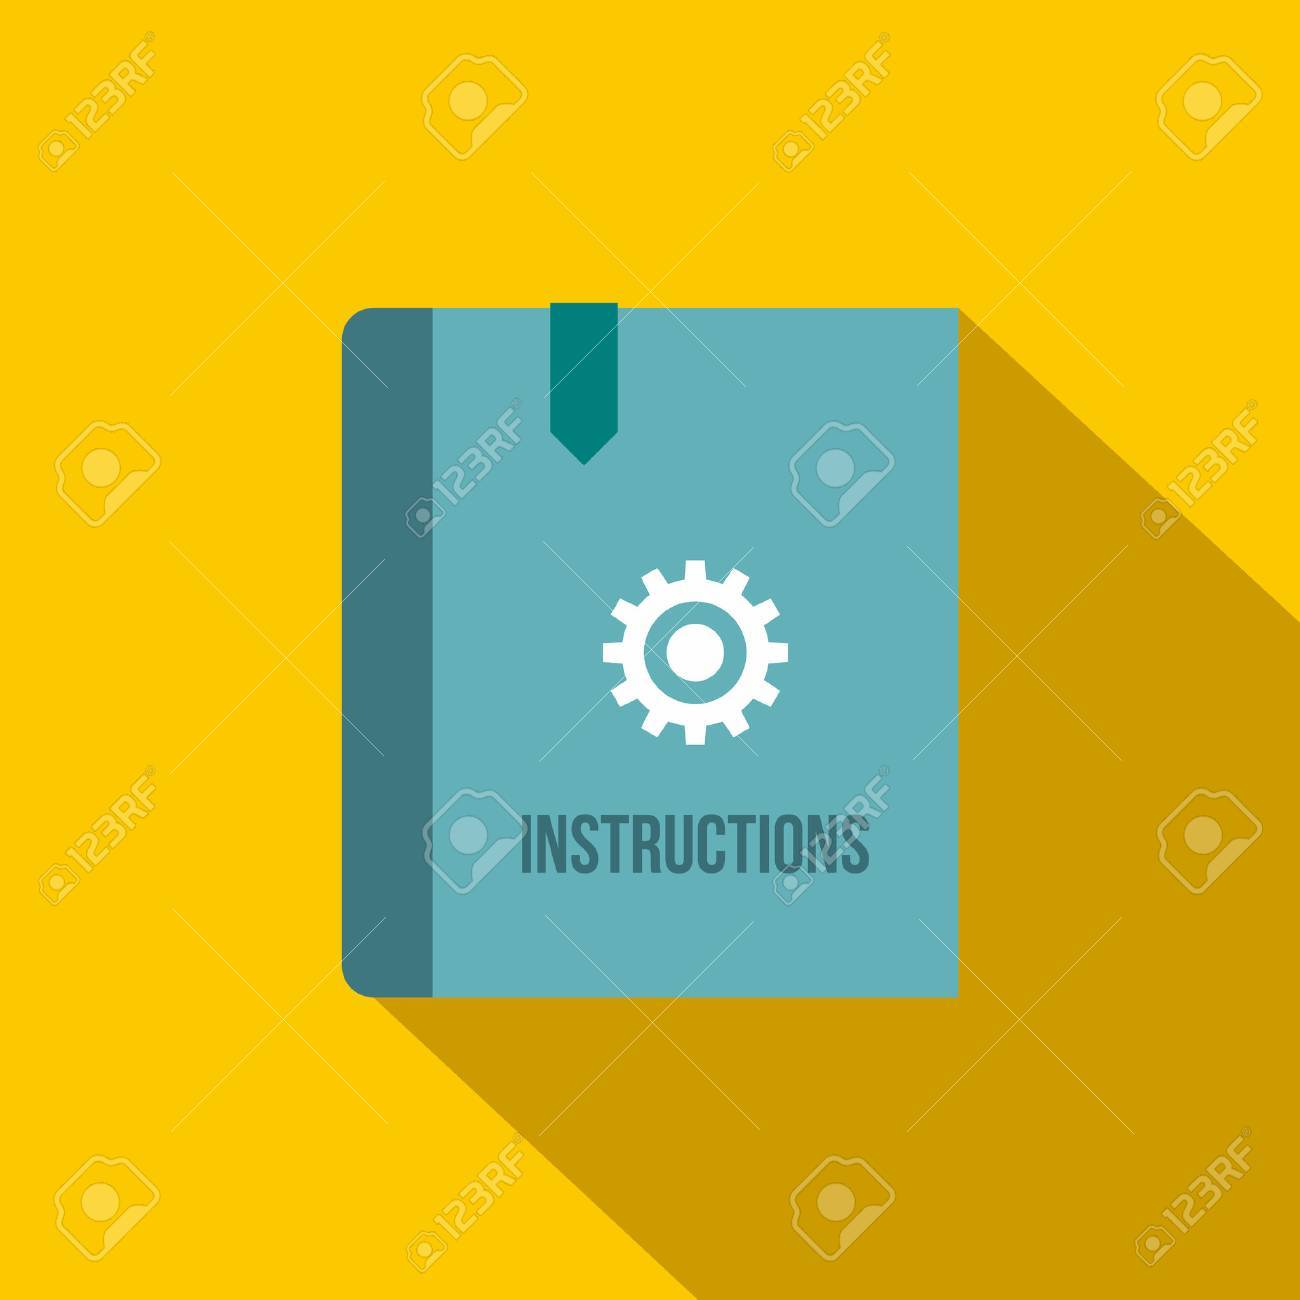 Instruction book icon in flat style on a yellow background - 55304723